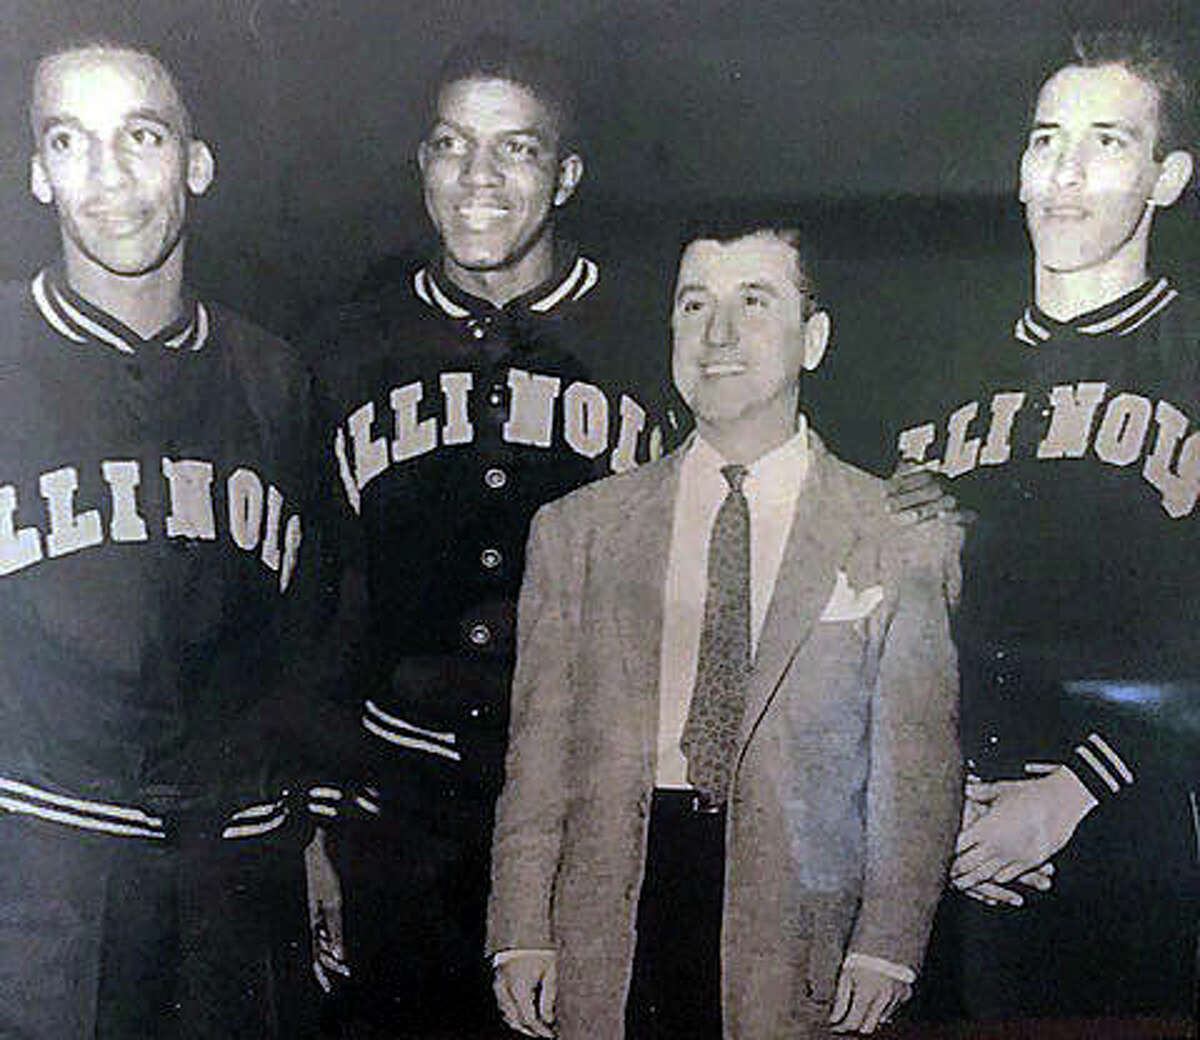 Edwardsville graduate Don Ohl, right, with EHS coach Joe Lucco, second from right, and former EHS teammates Mannie Jackson, left, and Govoner Vaughn during their playing days with the Illini.